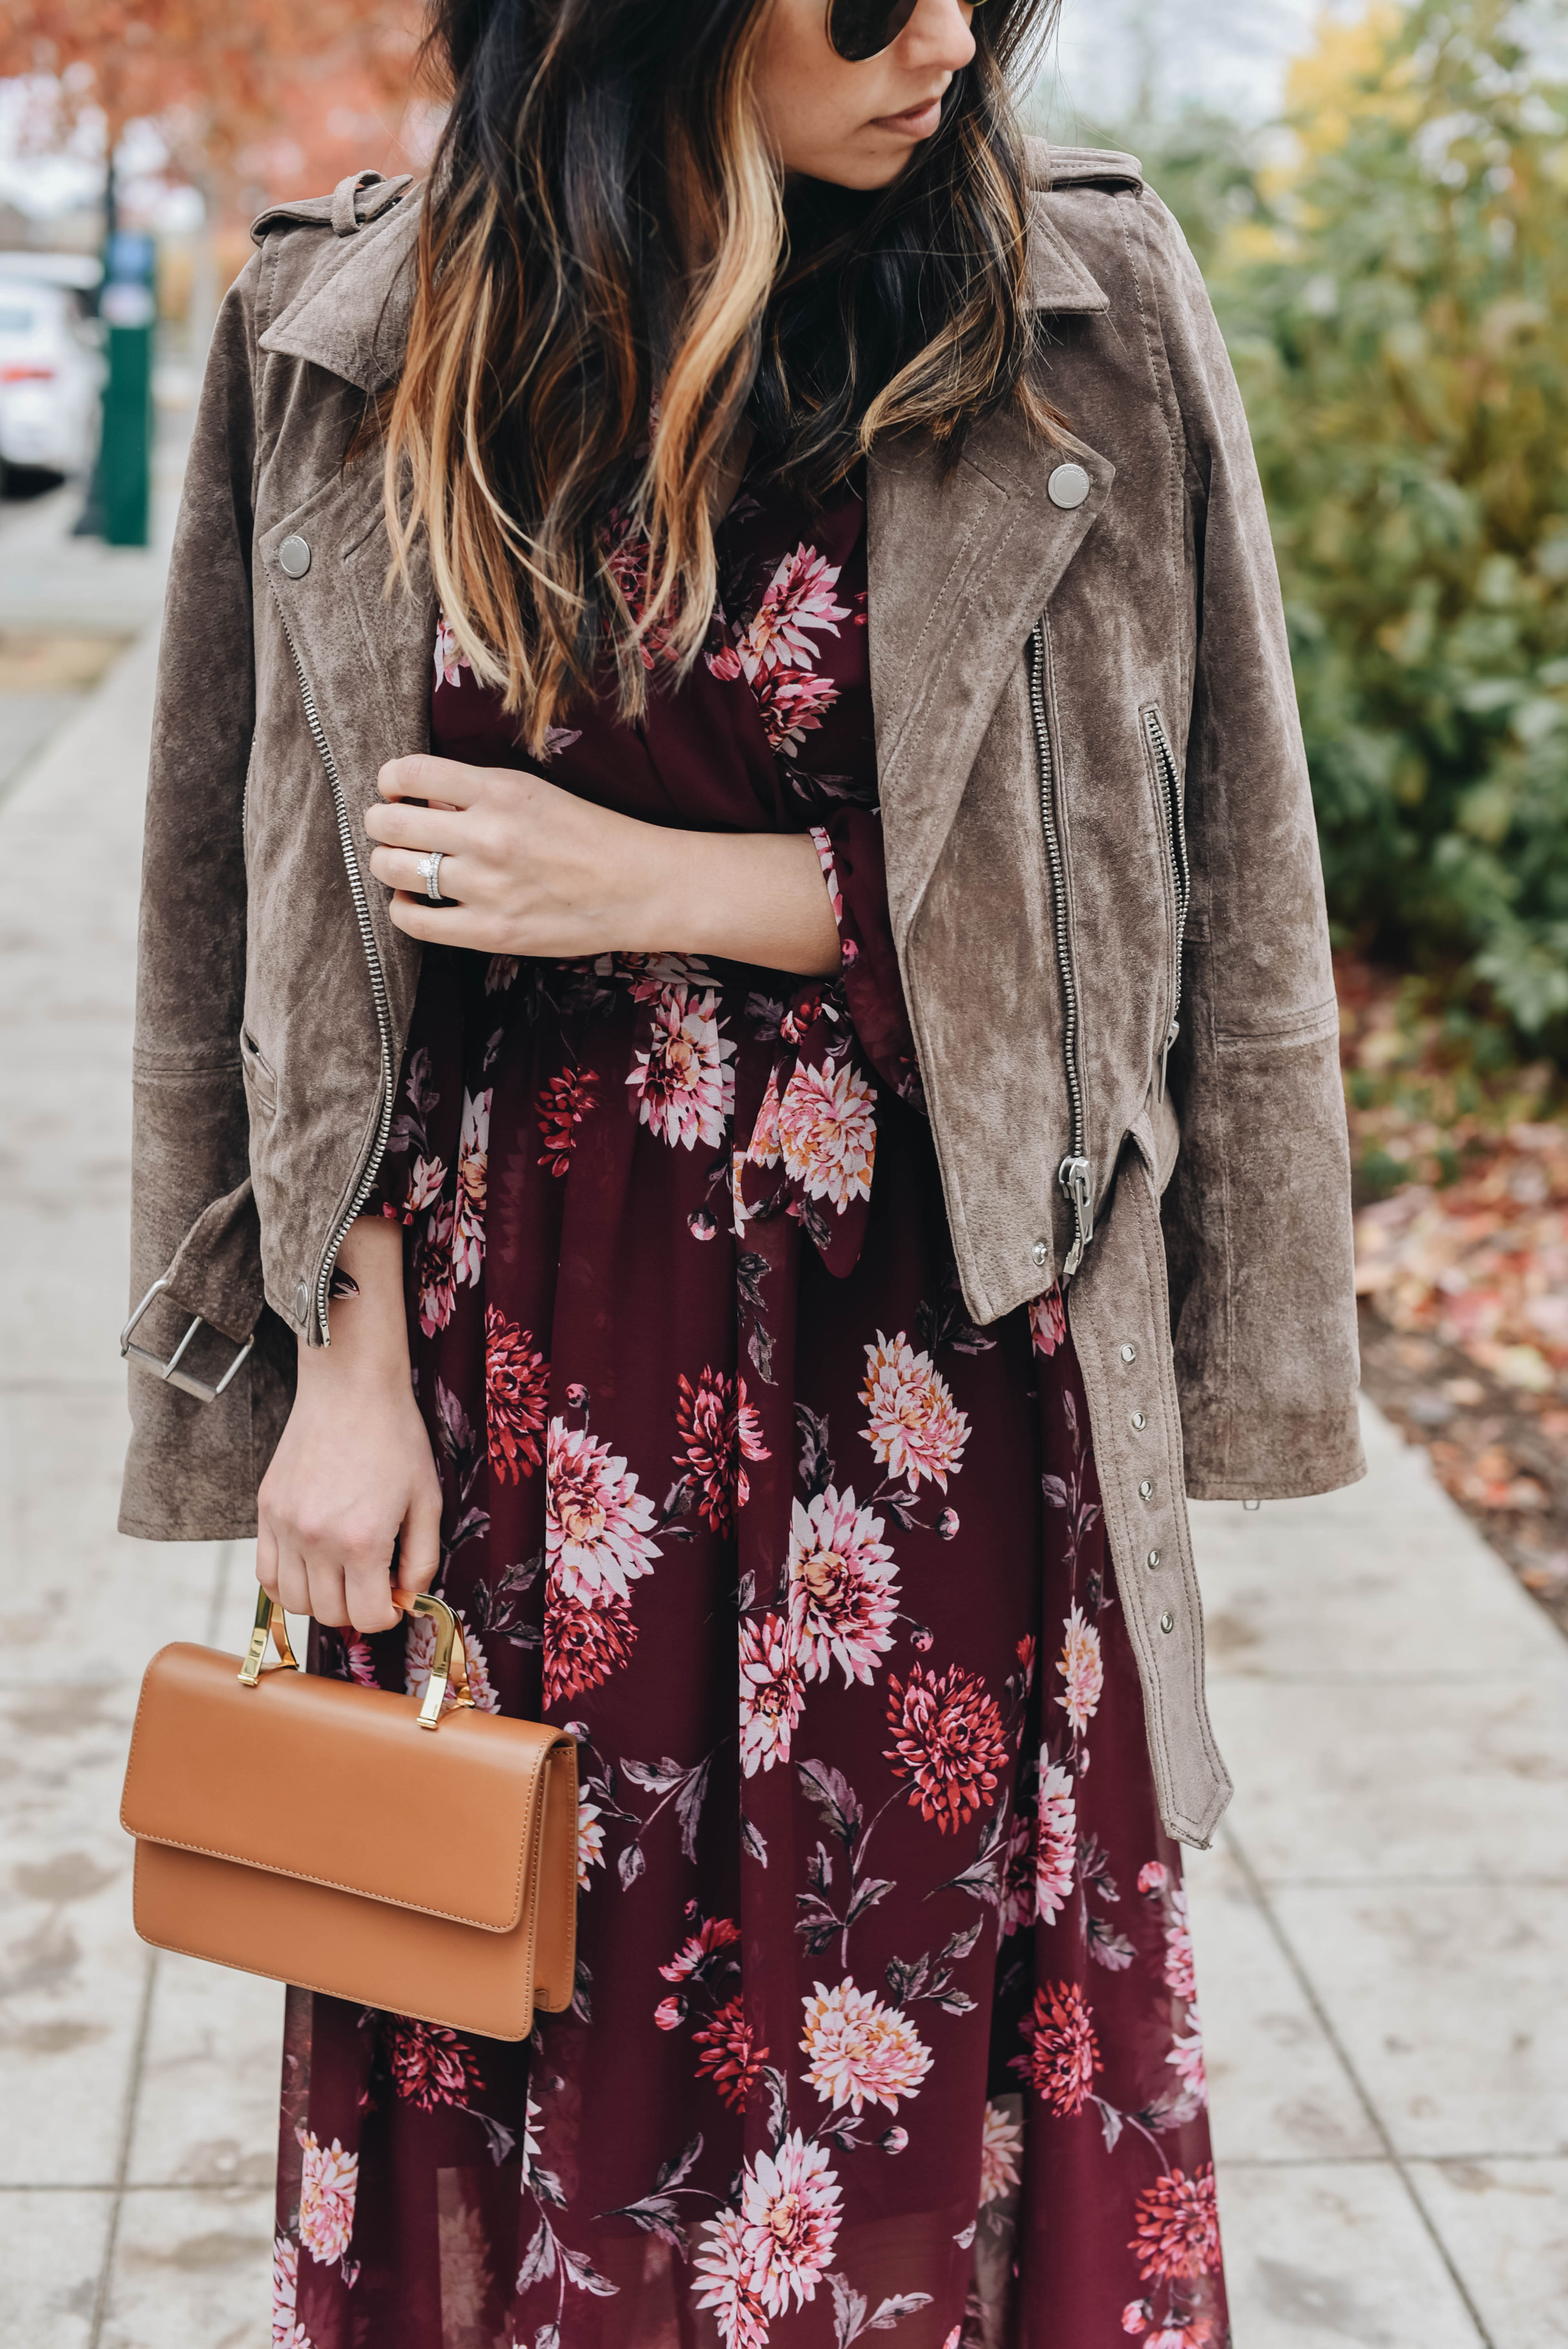 Best dresses for a fall wedding